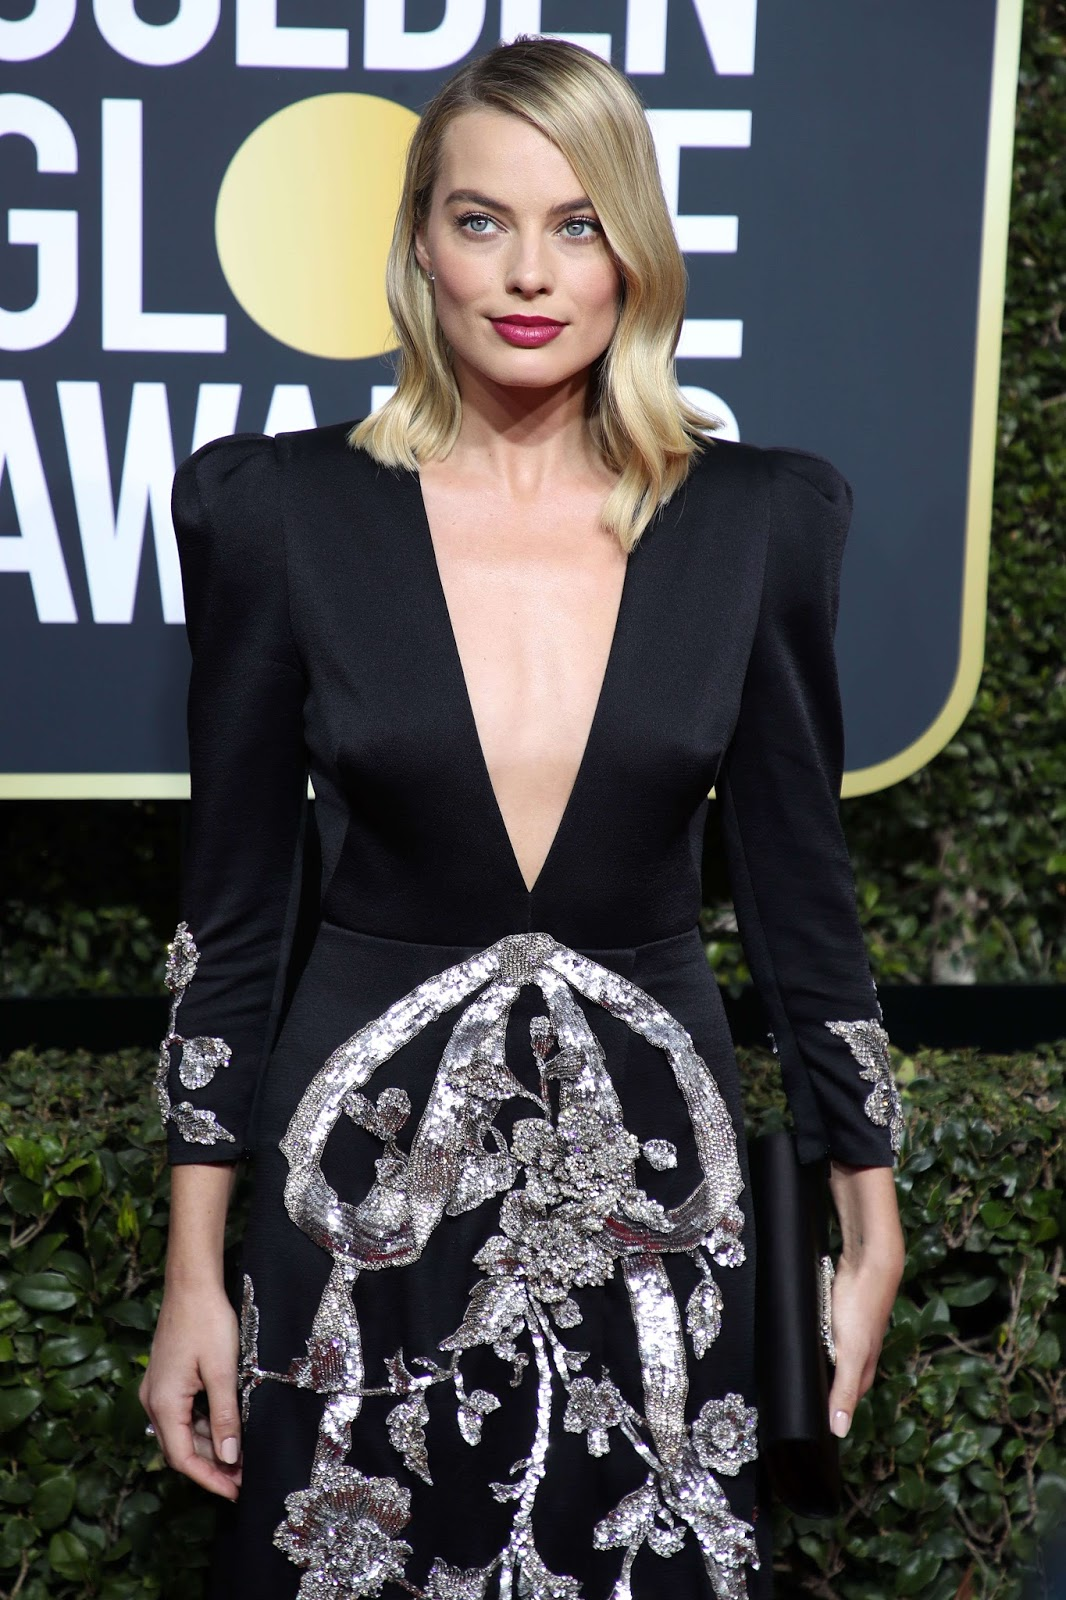 Margot Robbie Dress on the Red Carpet at Golden Globe Awards